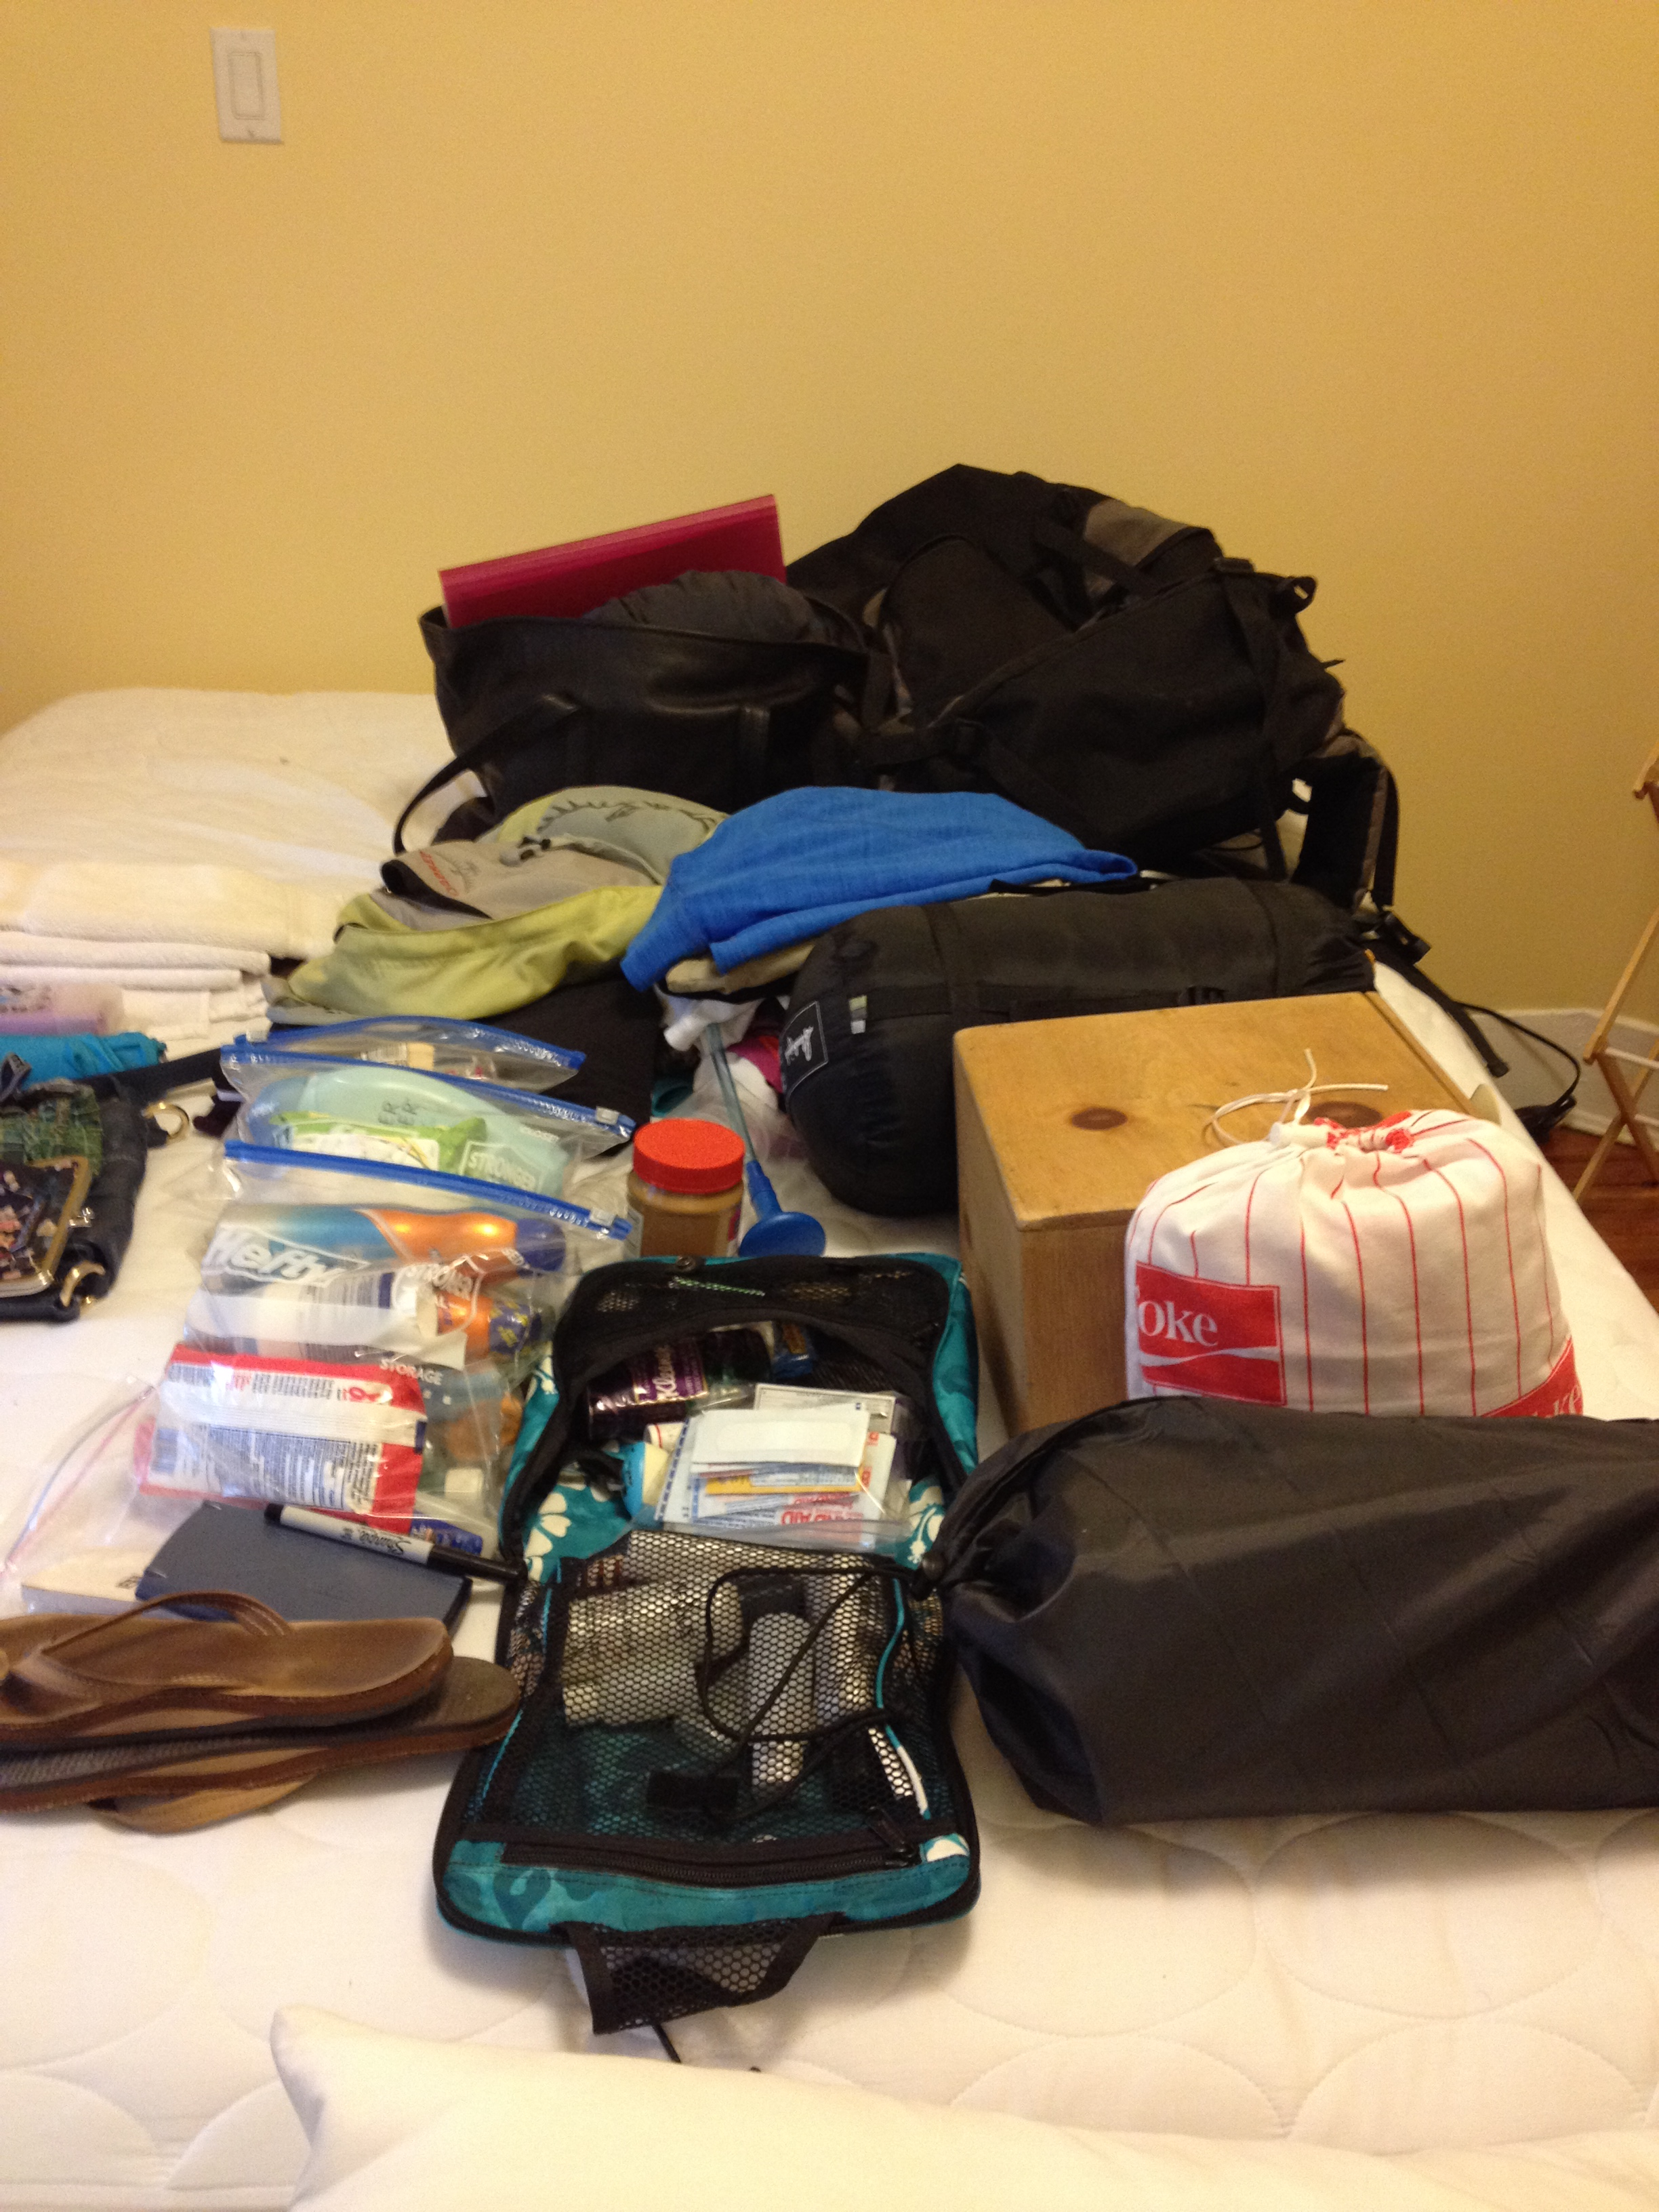 Lauren's incredibly neat packing job!